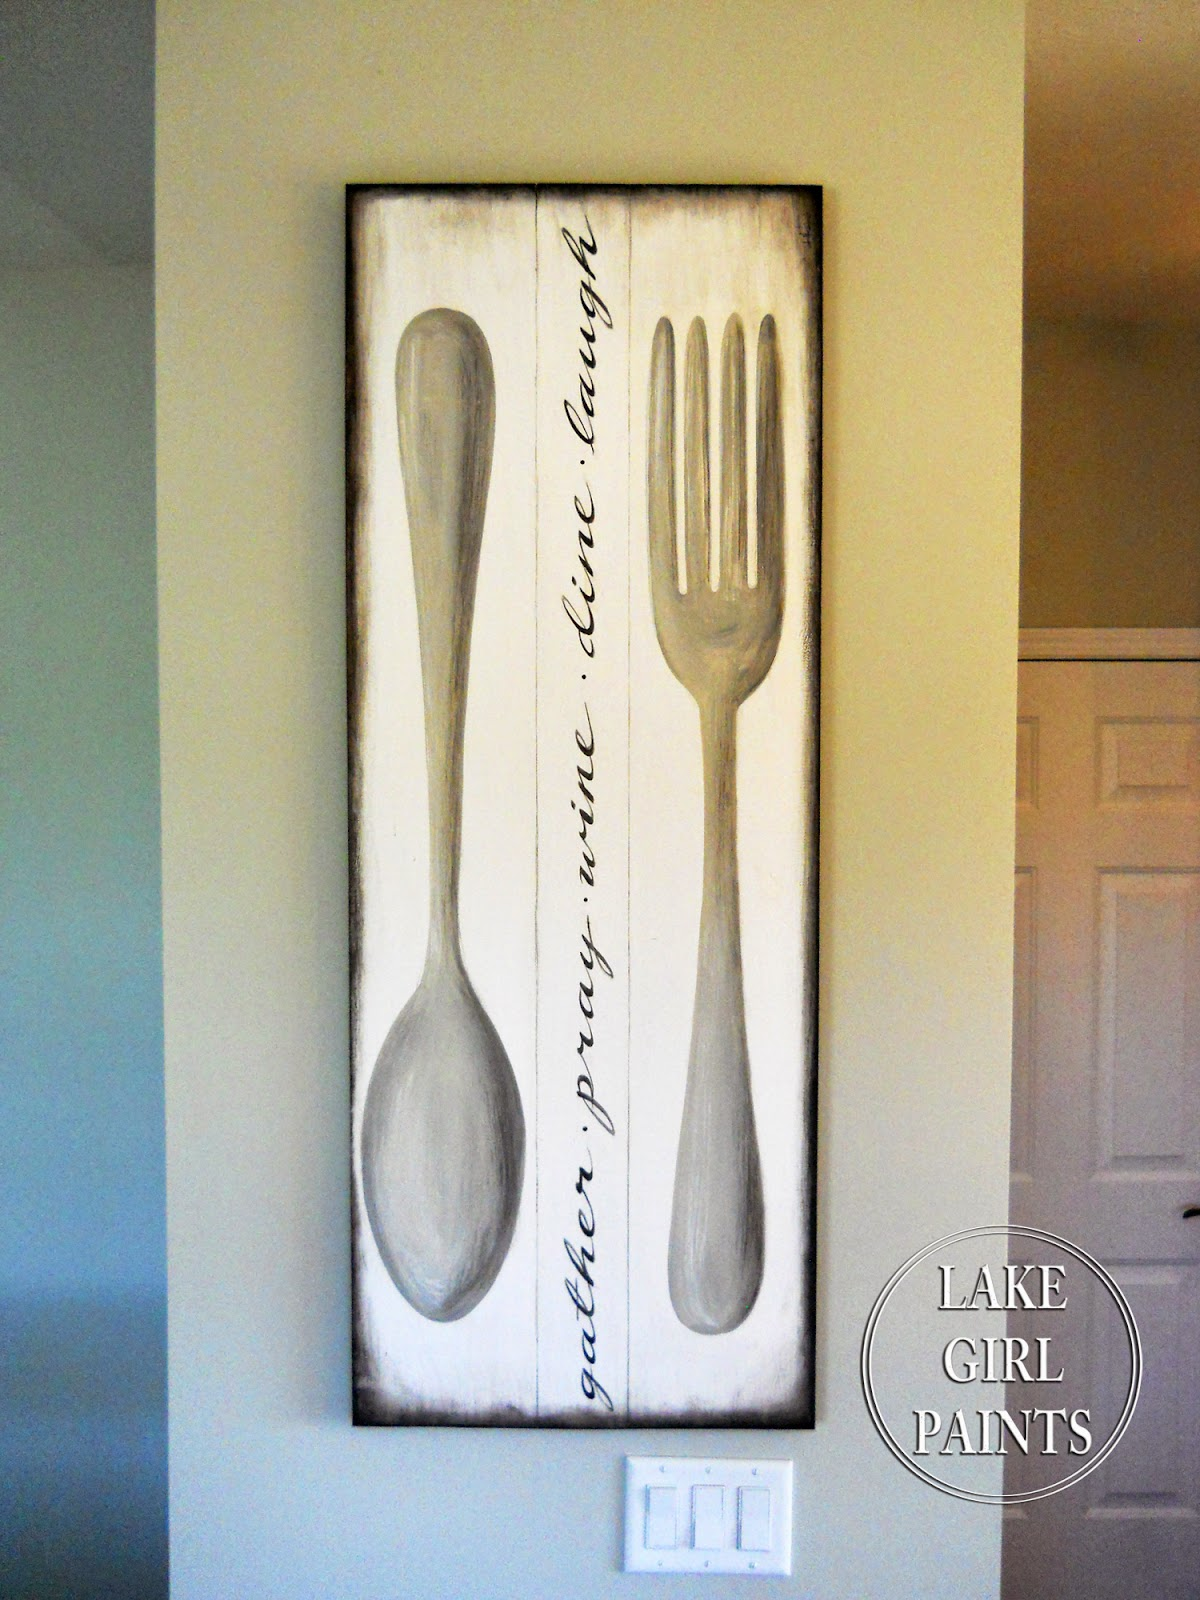 Lake girl paints making dining room wall art for Kitchen and dining room wall decor